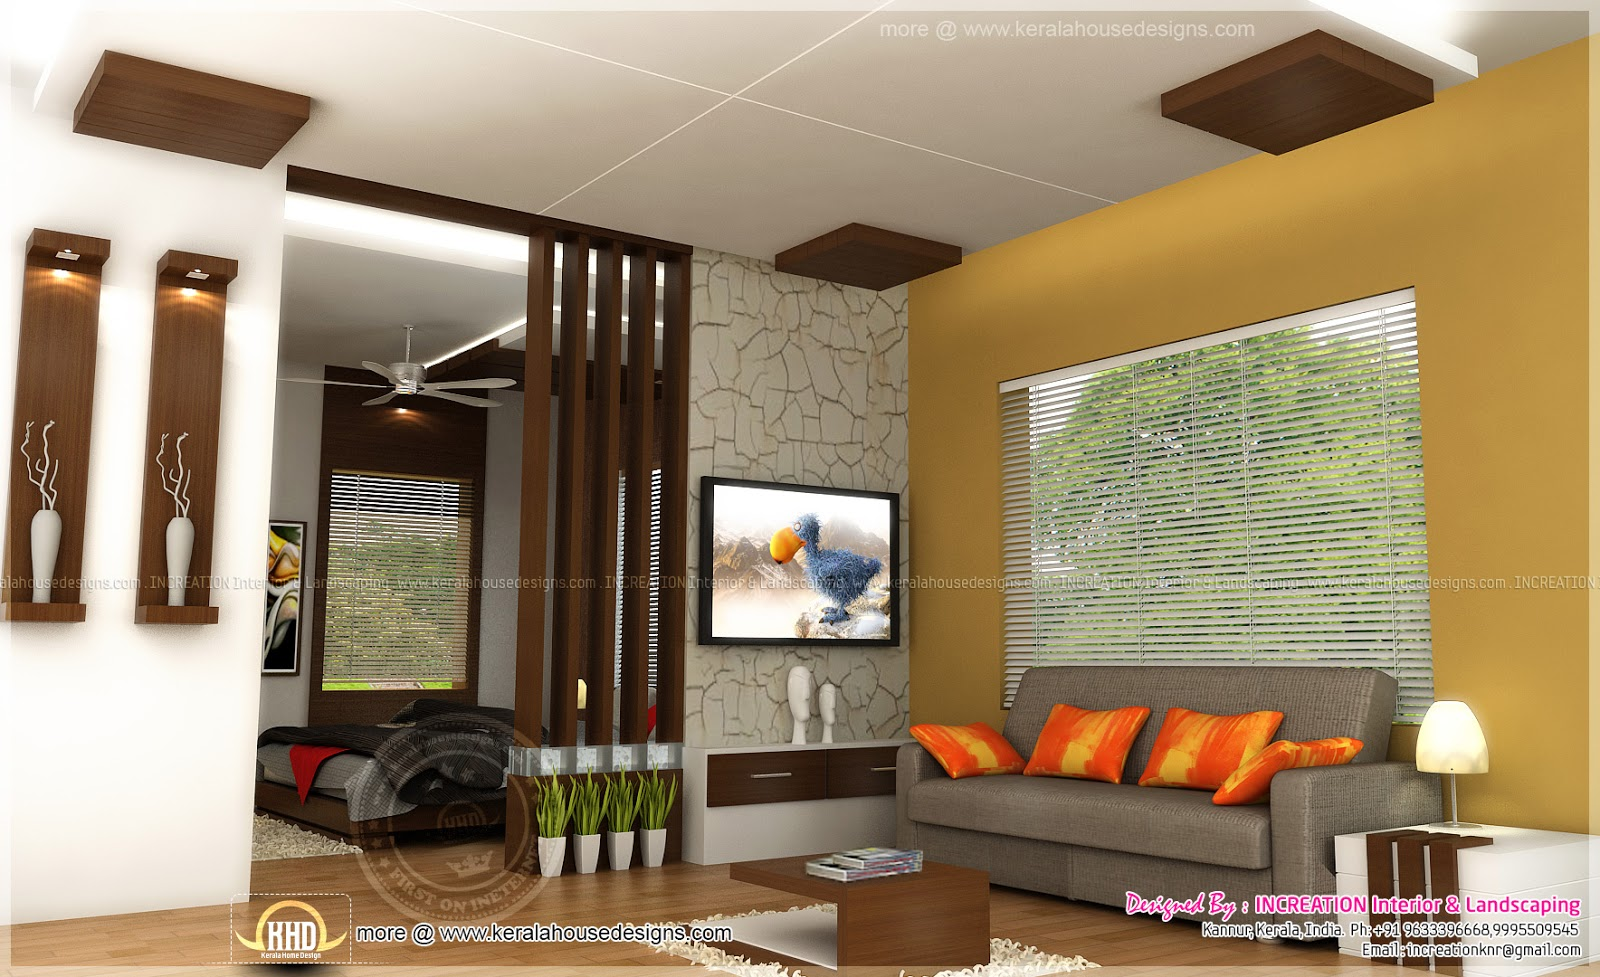 interior designs from kannur kerala kerala home design On kerala home interior design ideas